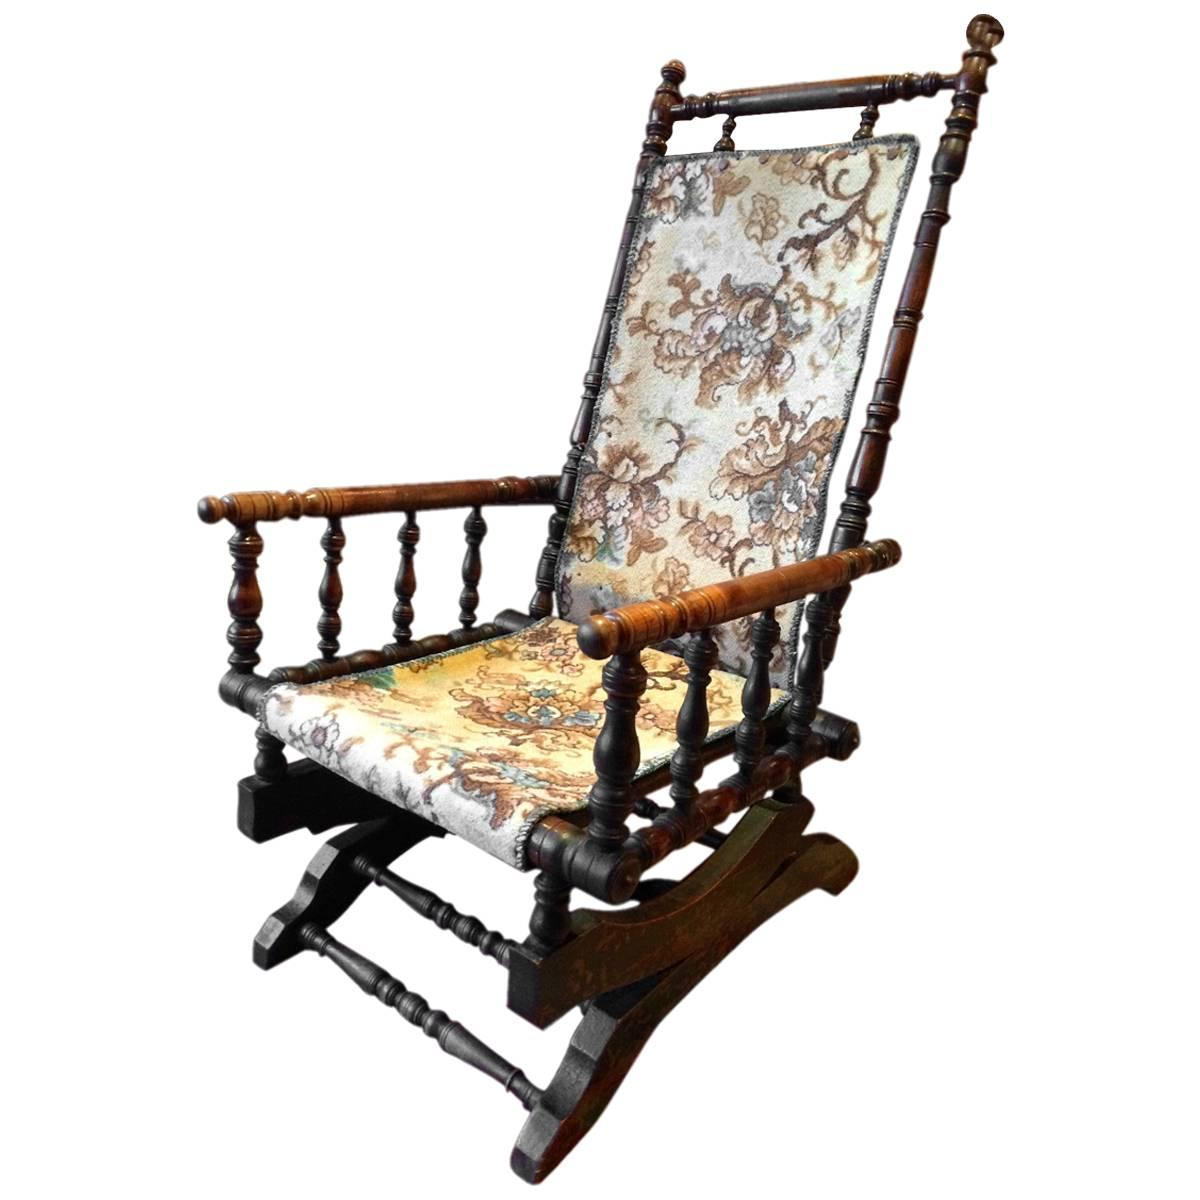 Antique Armchair American Rocking Chair Mahogany 19th Century Victorian at  1stdibs - Antique Armchair American Rocking Chair Mahogany 19th Century